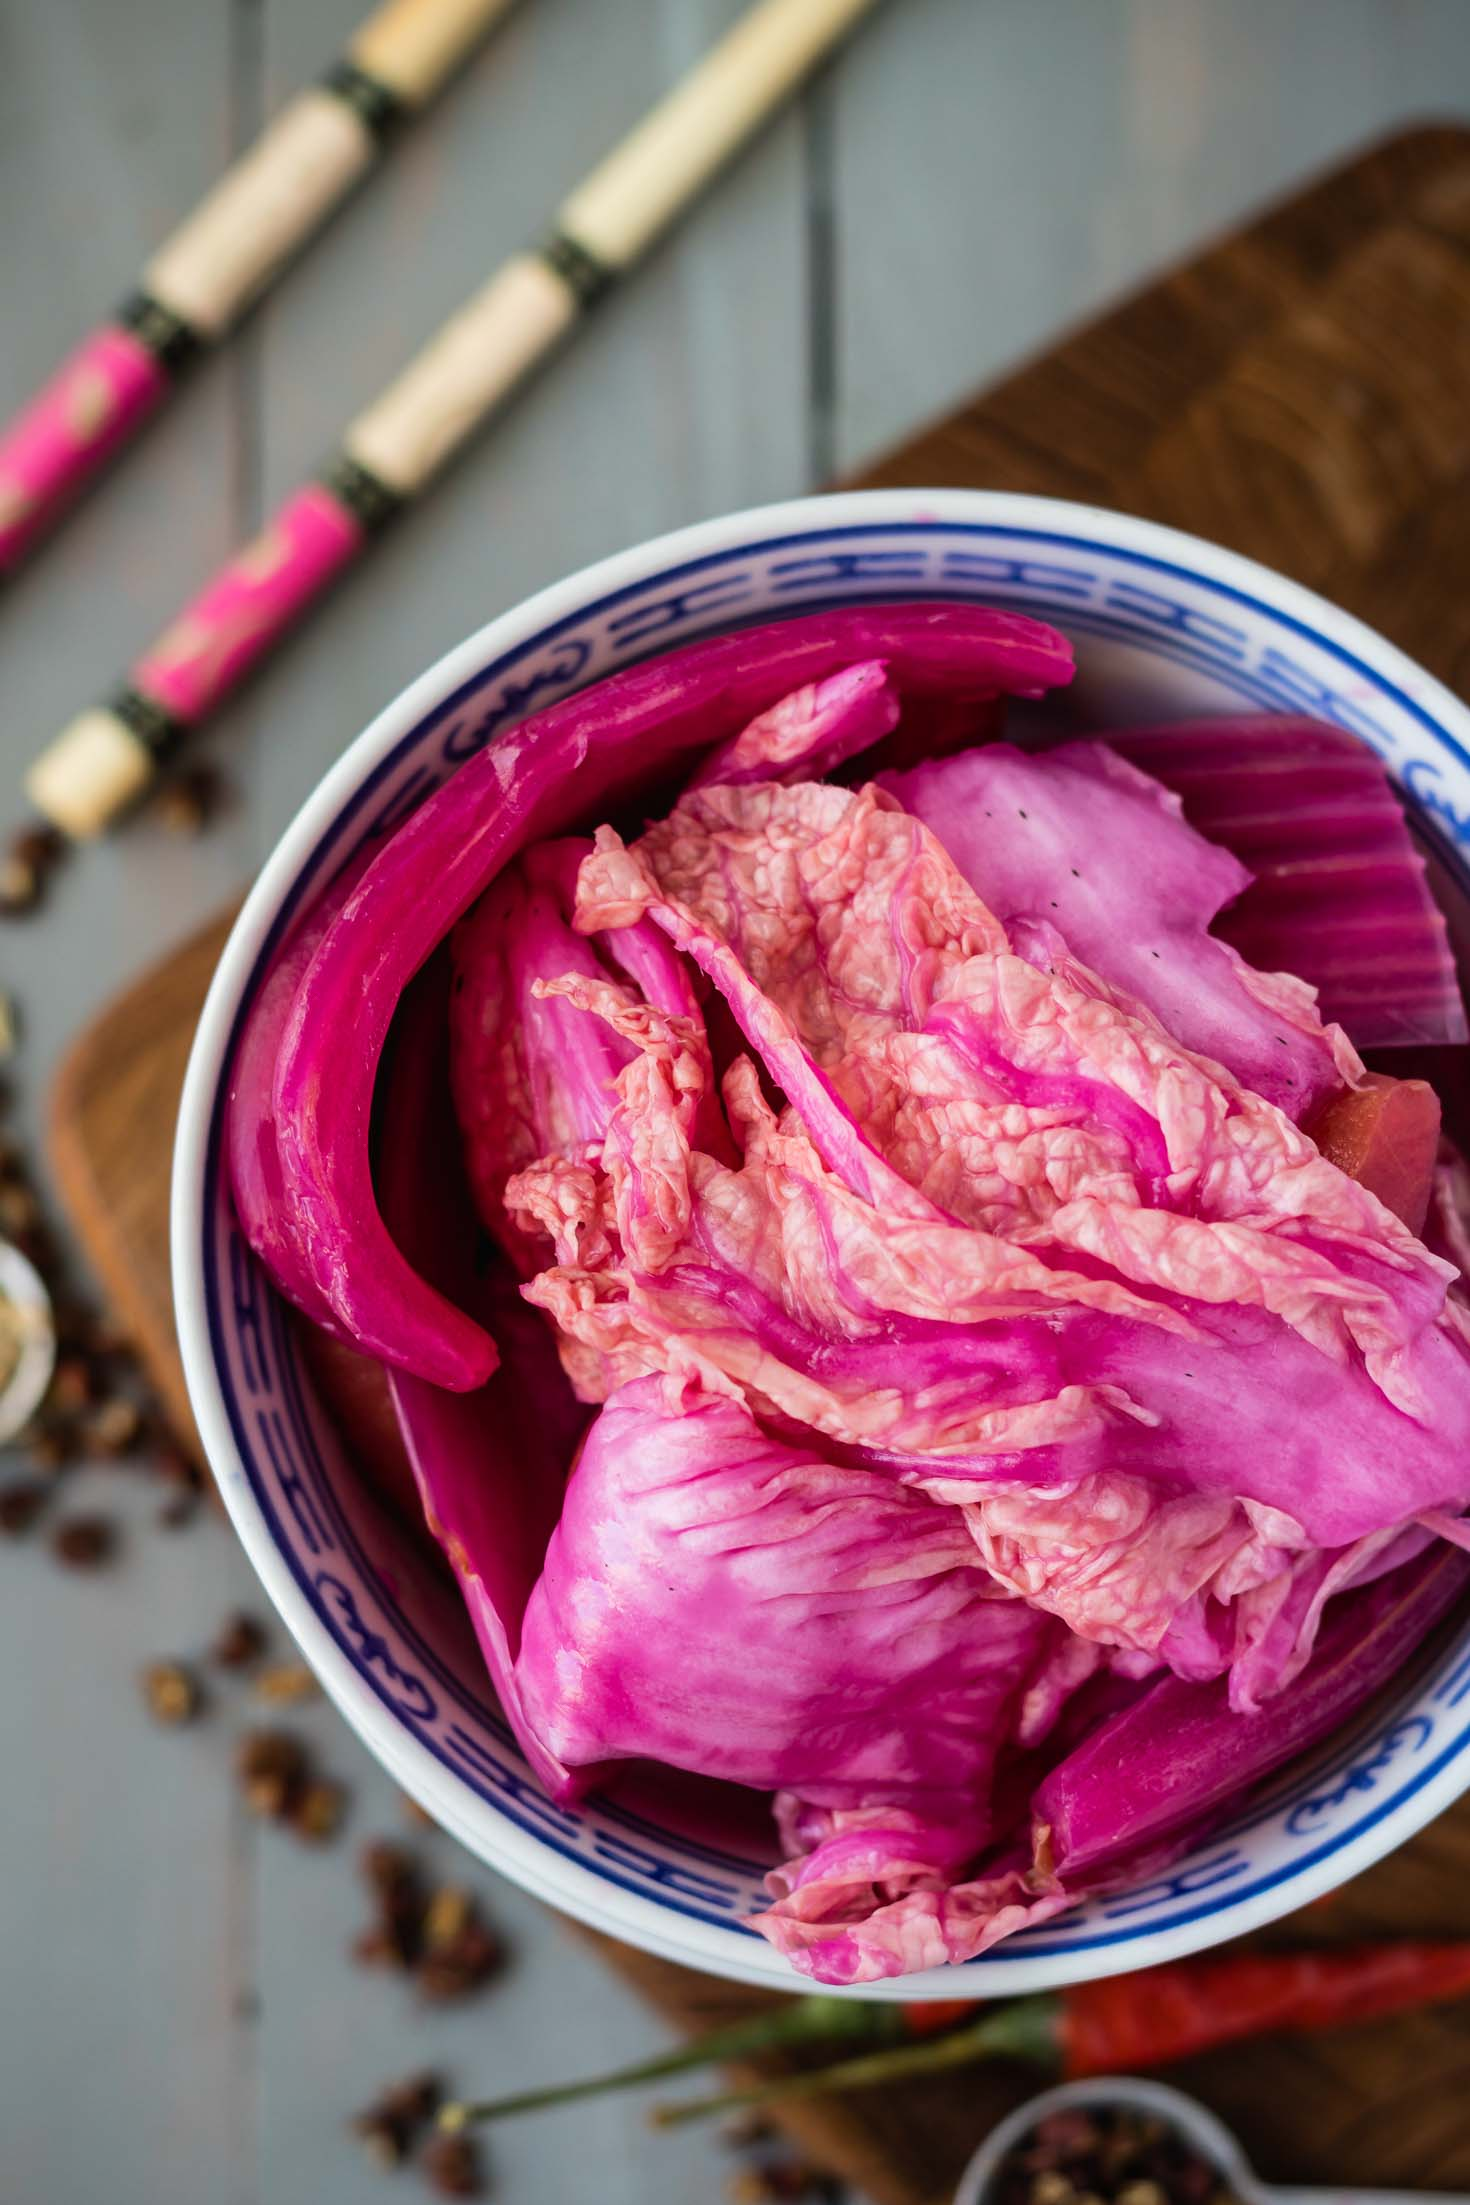 Sichuan Style Fermented Vegetables-top view-pink napa cabbage, carrots, celery-in a bowl